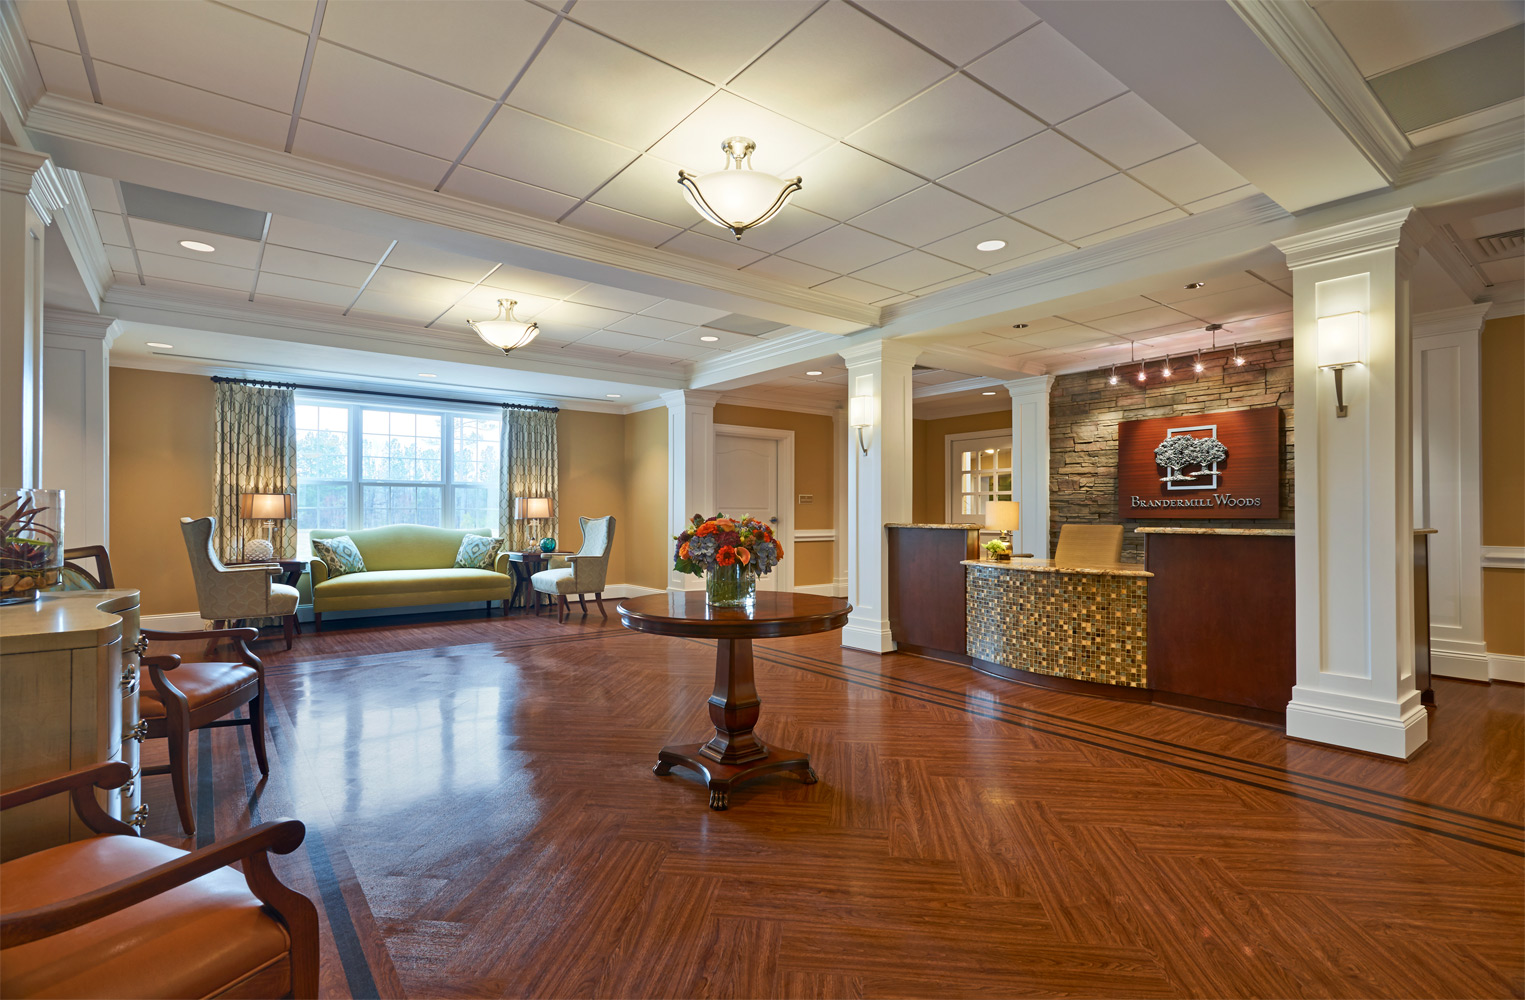 Brandermill Woods Skilled Care Apartment Image